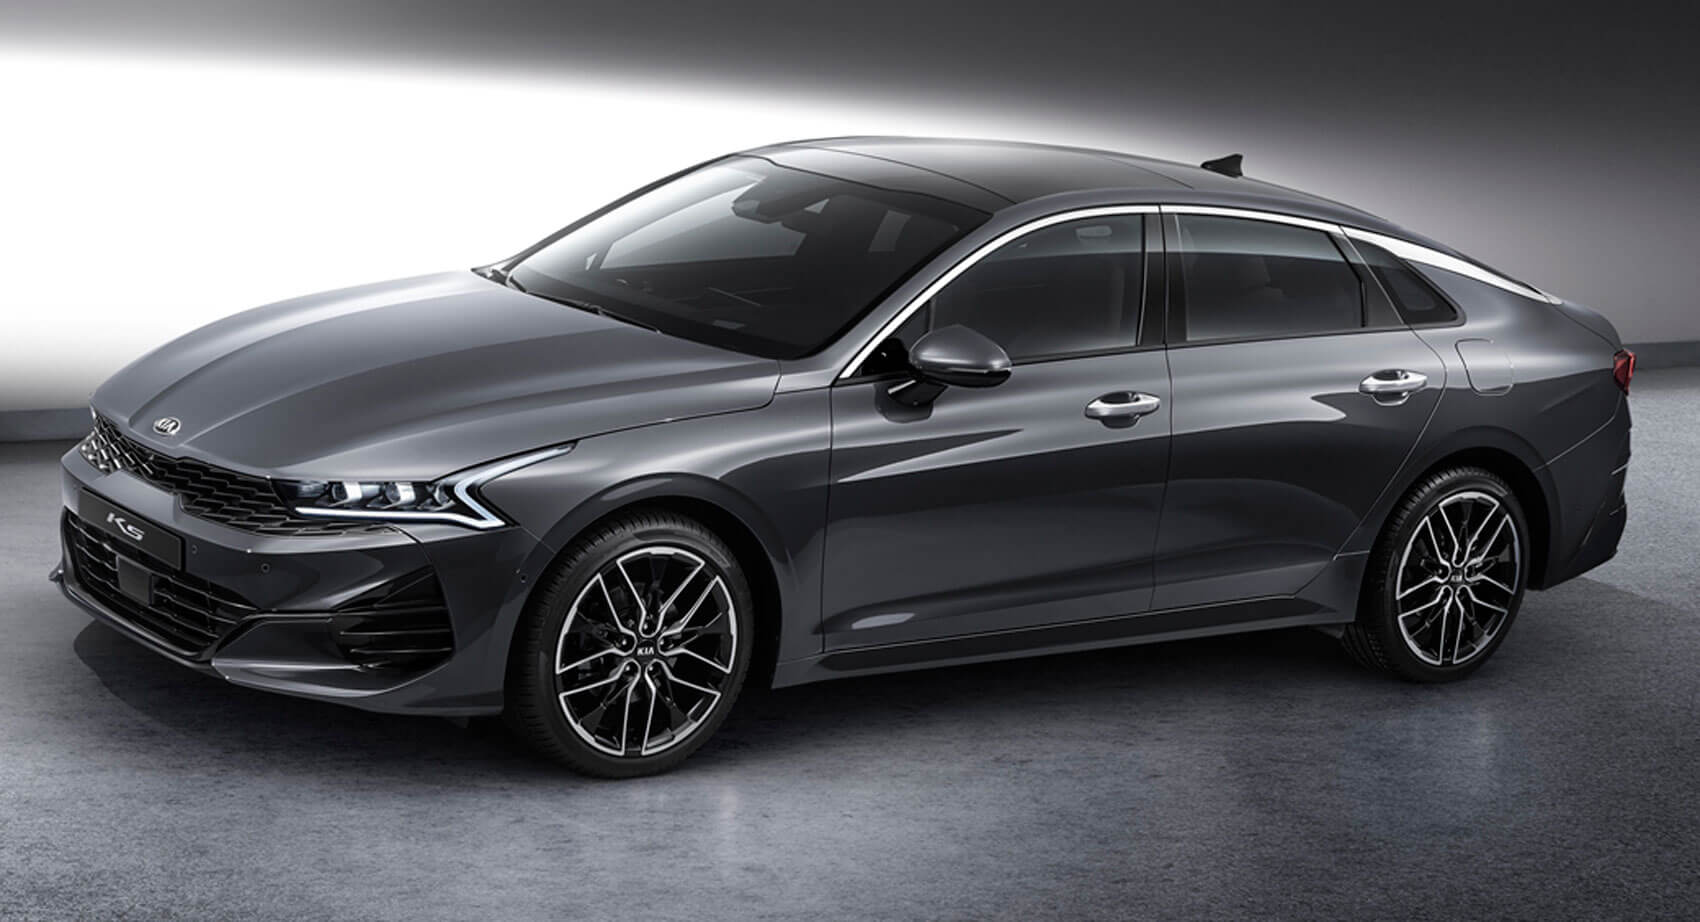 2021 kia optima unveiled in korea as the k5 and it looks